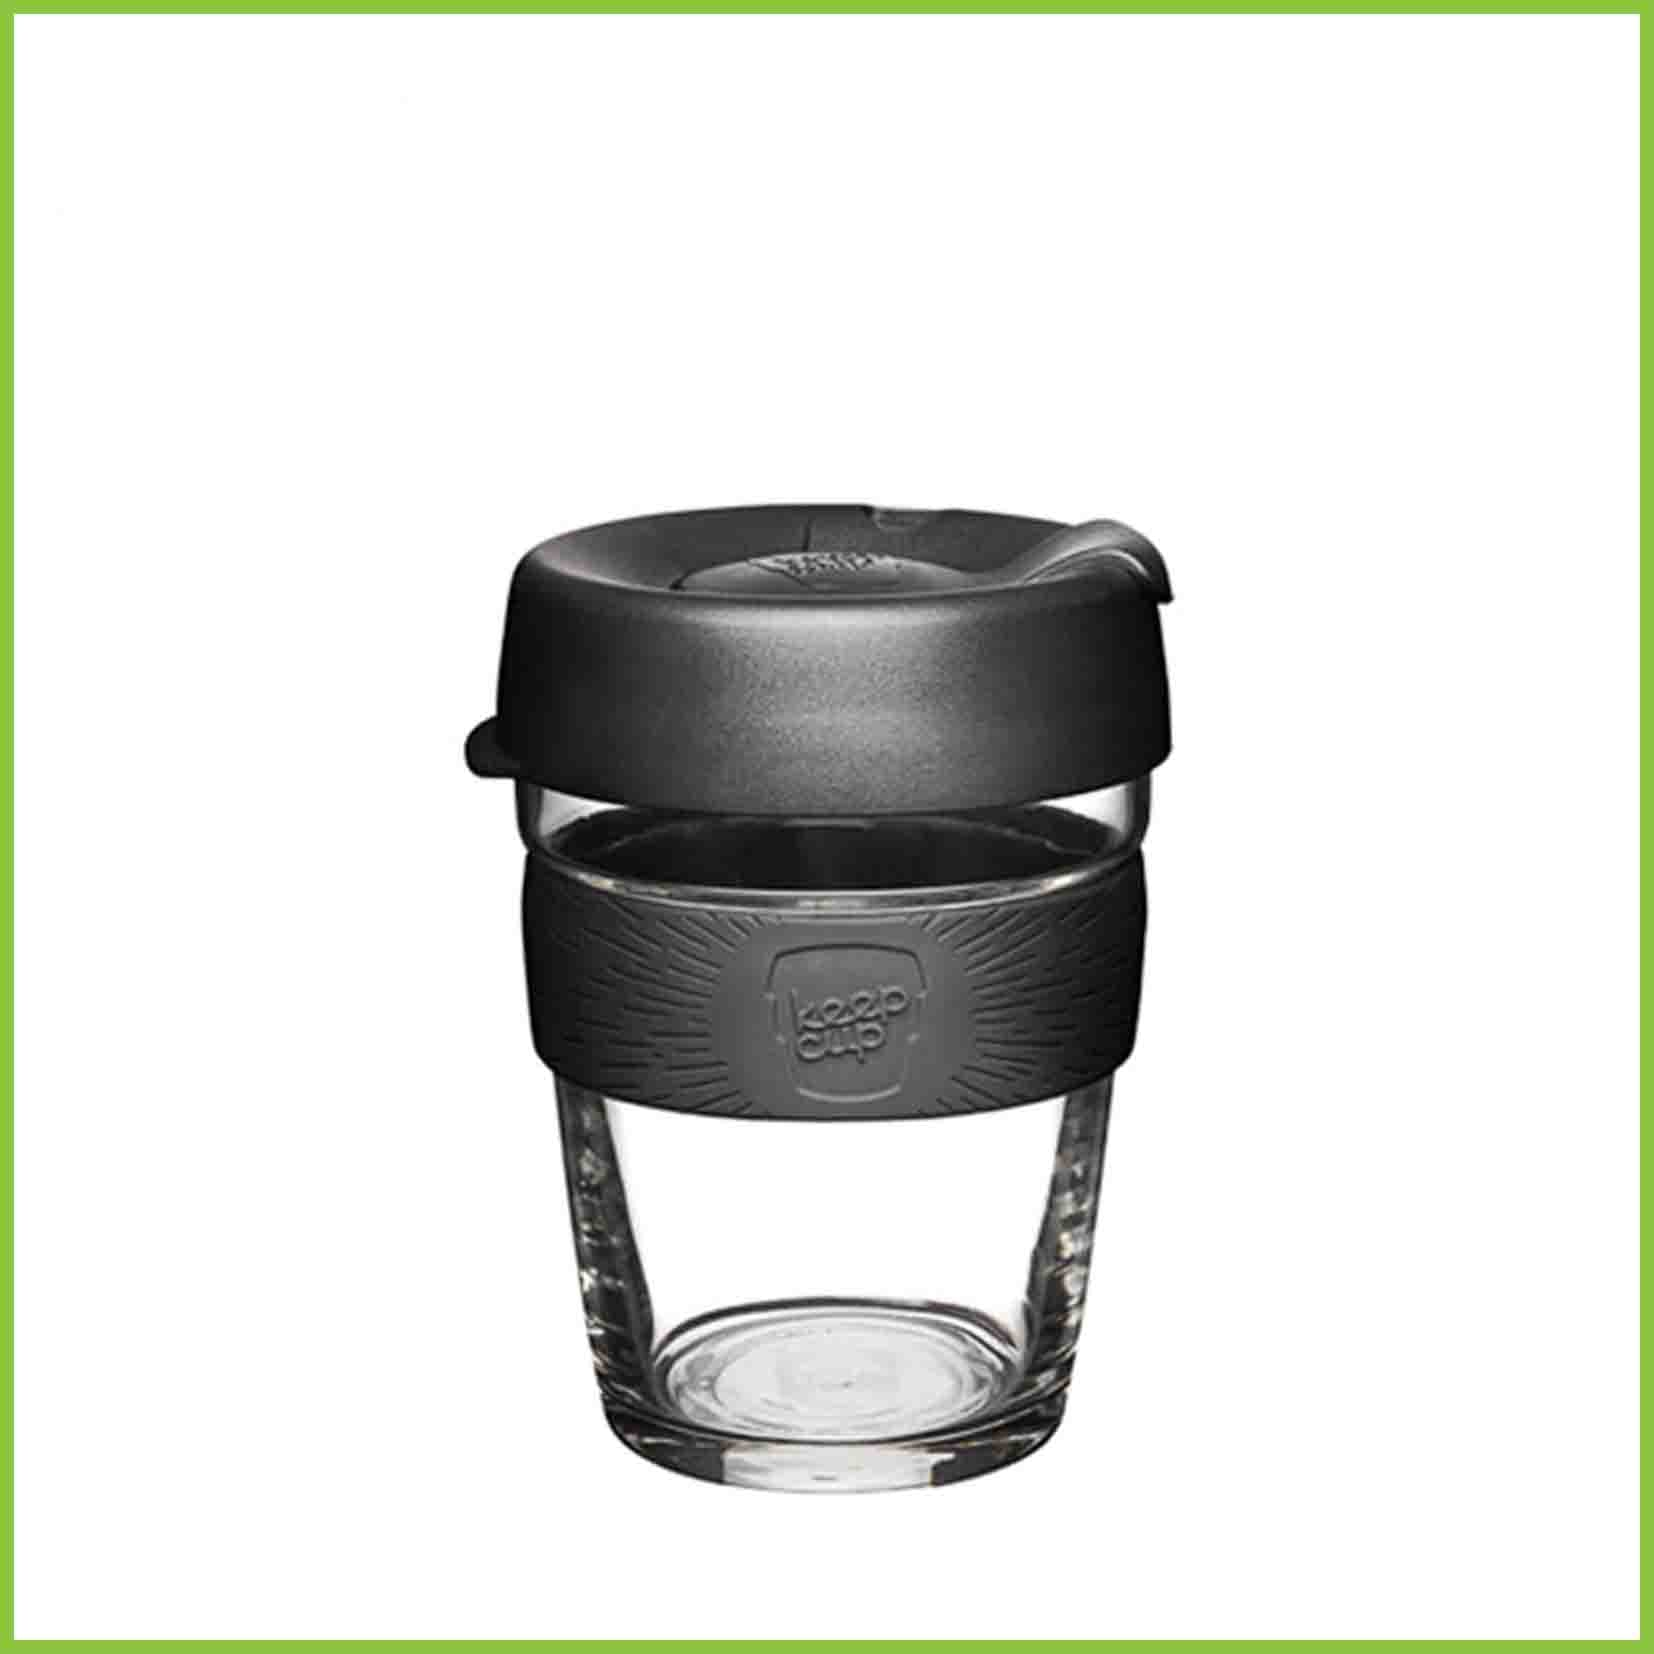 340ml reusable glass cup from Keepcup with a black lid and a black band.